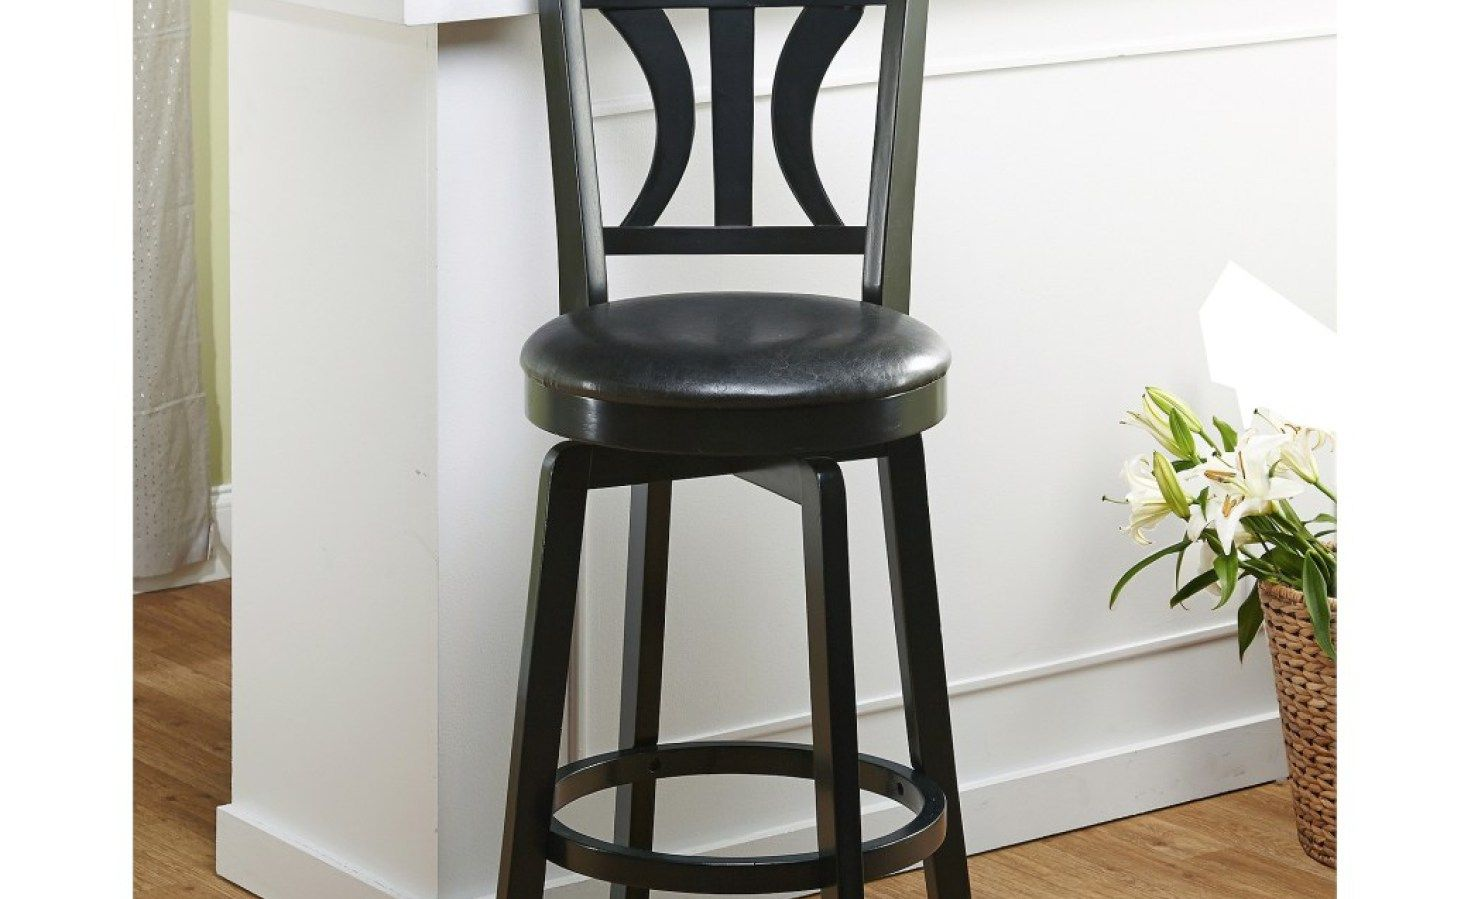 Rustikale Barhocker Tall Backless Bar Stools Barhocker Backless Bar Stools Stool